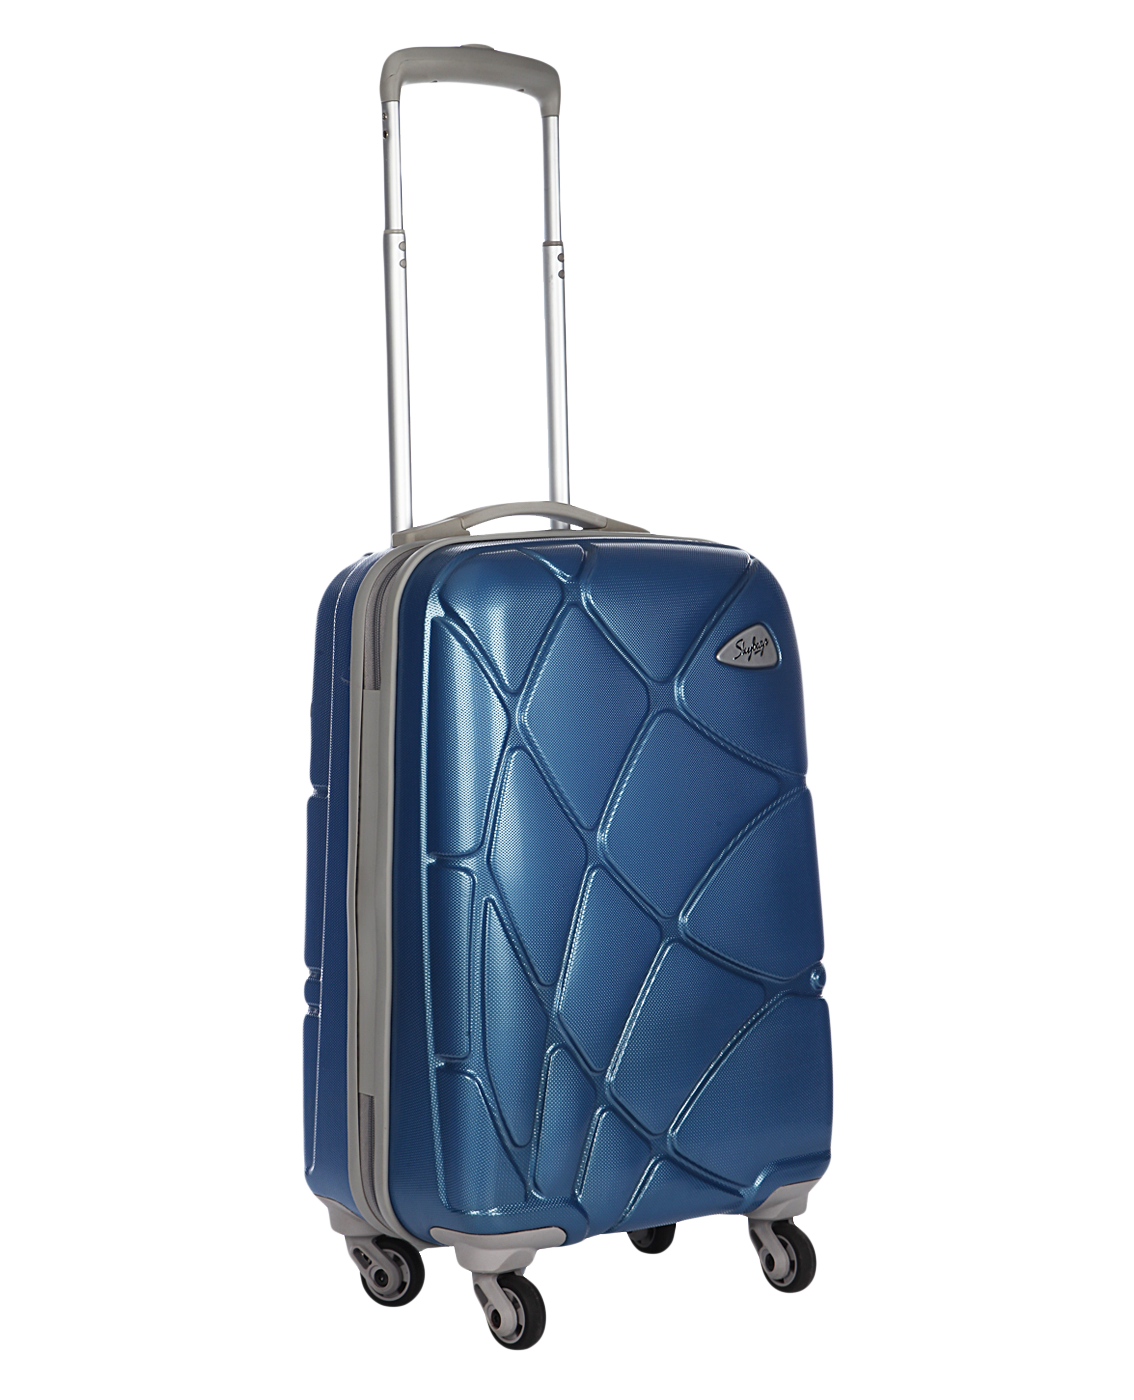 Luggage clipart baggage cart. Trolley png images pngpix